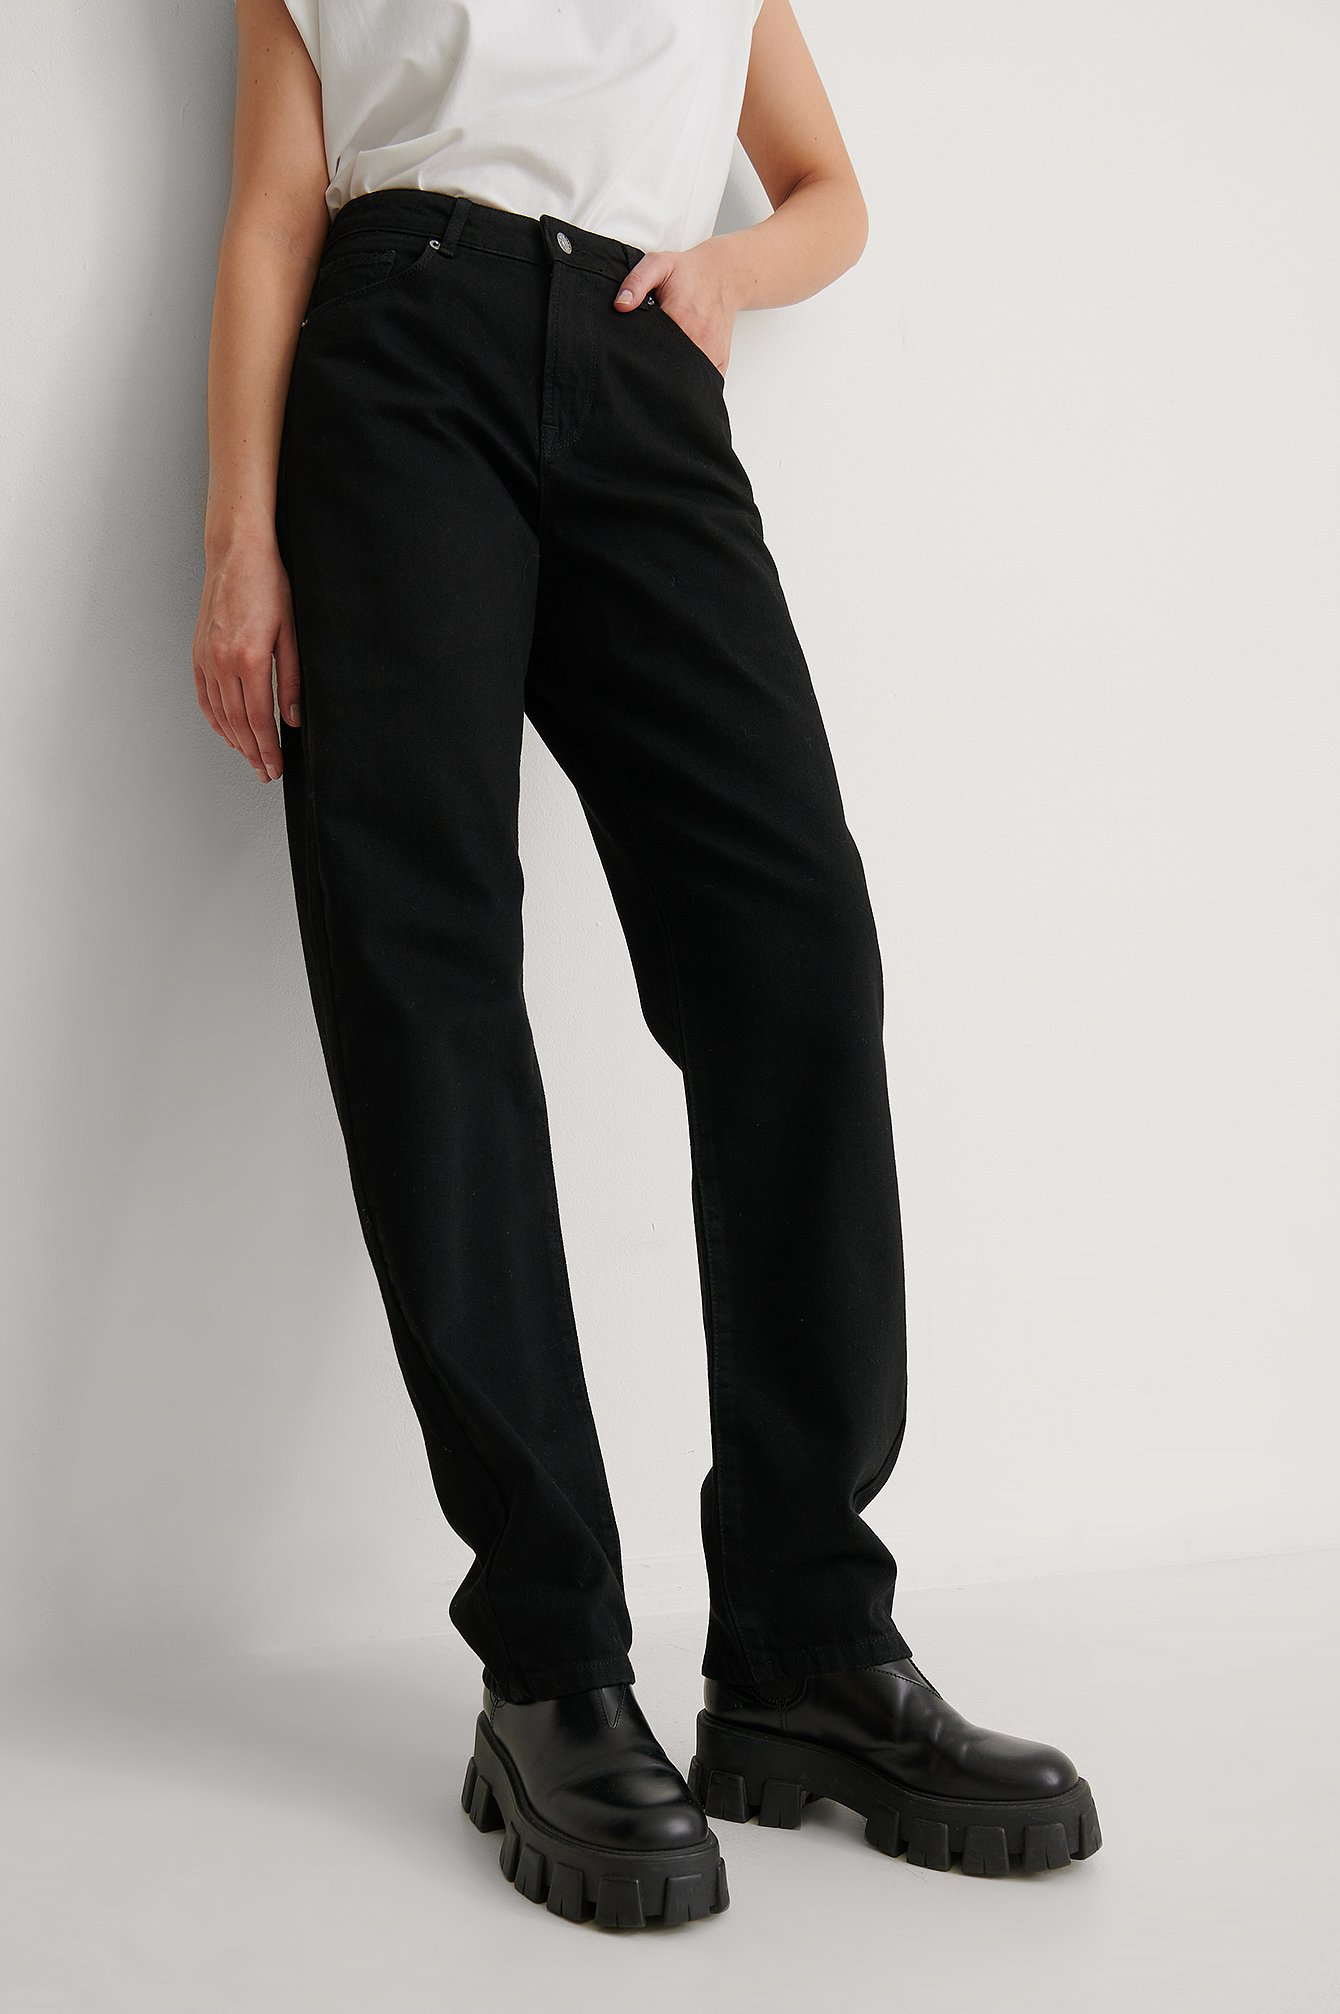 Black Soft Rigid Oversized Long Jeans